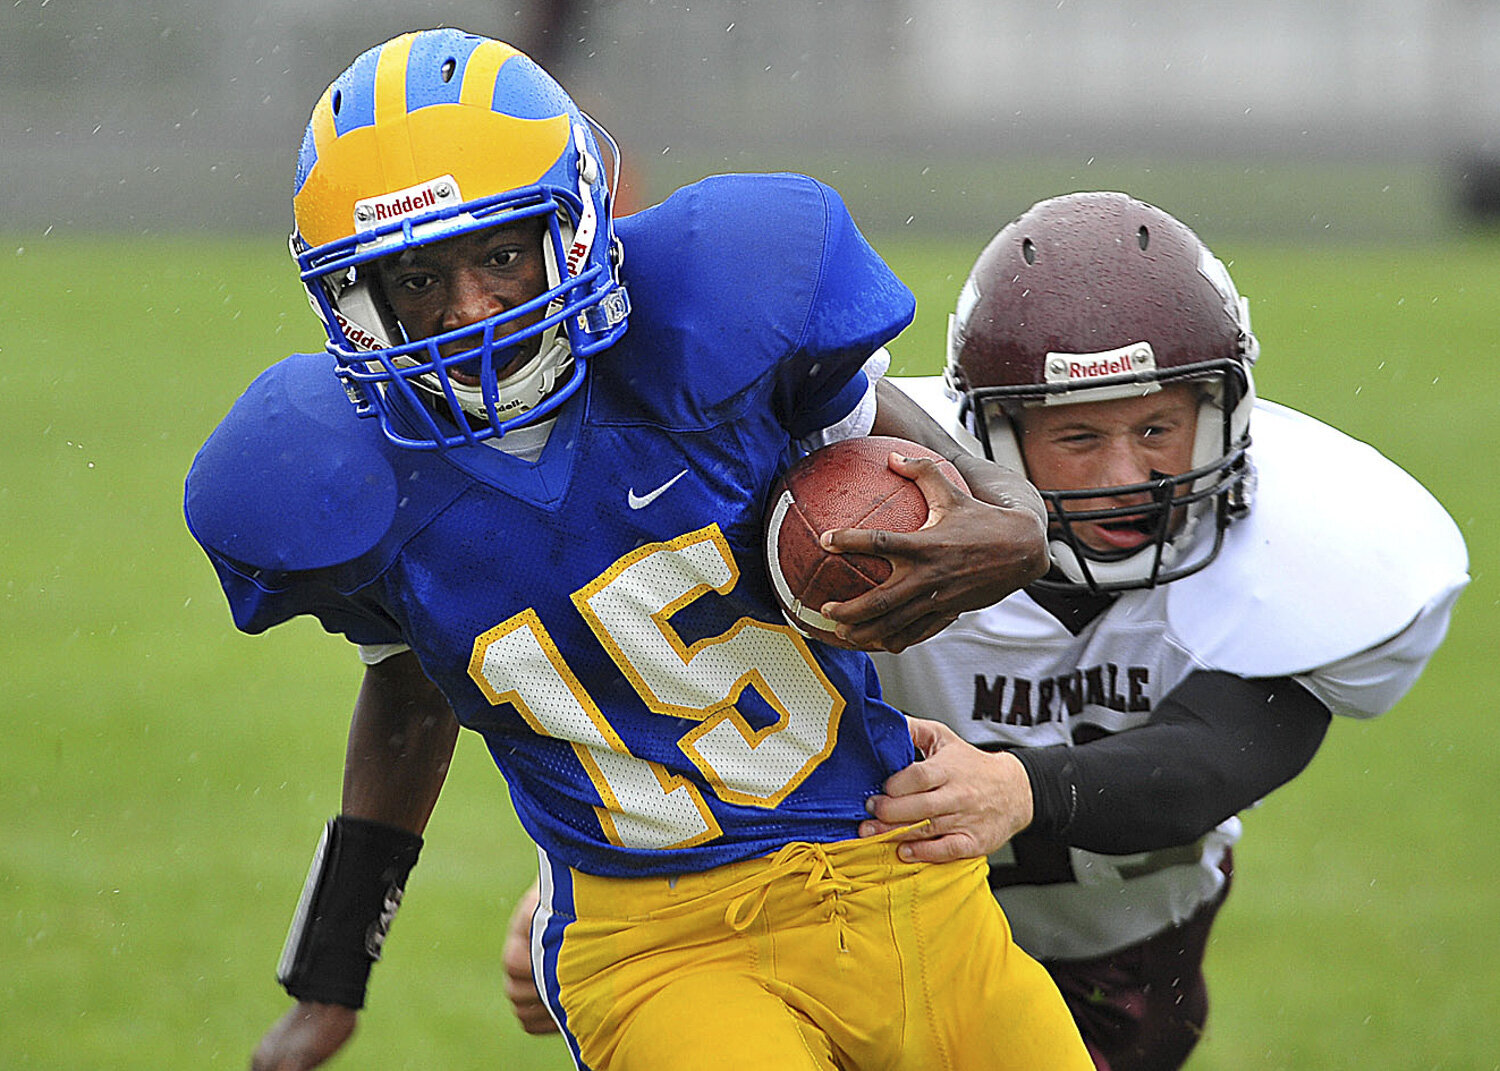 Golden Eagles Anthony Sullivan breaks a tackle from Flyers Michael Cammarano as Clev-Hill beats Maryvale 14-0 at Clev-Hill High School.